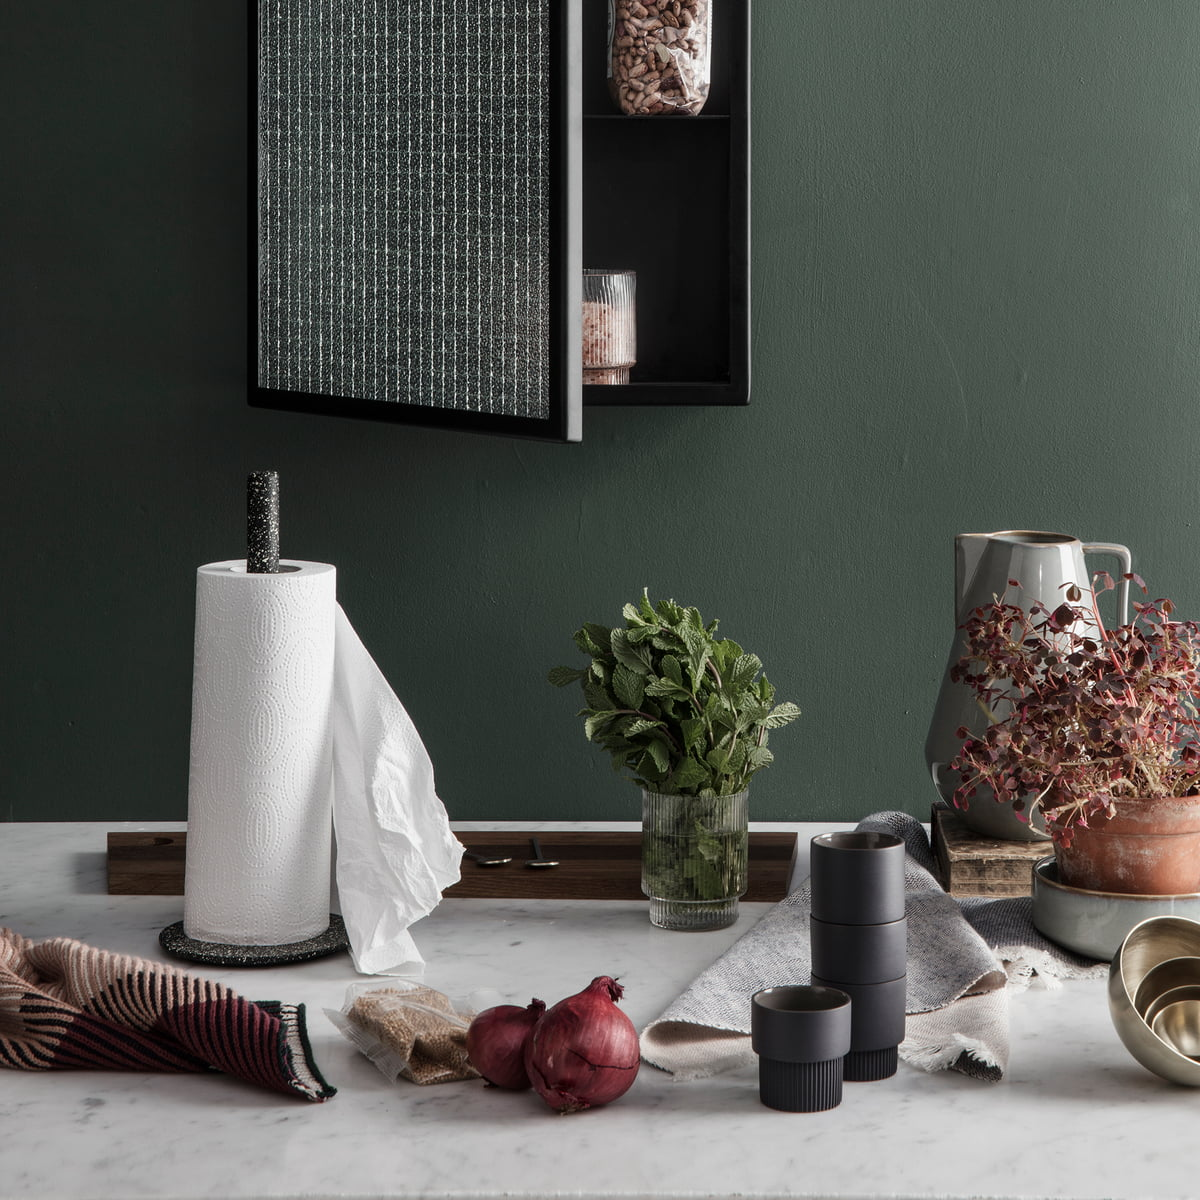 Buckle Kitchen Roll Holder By Ferm Living